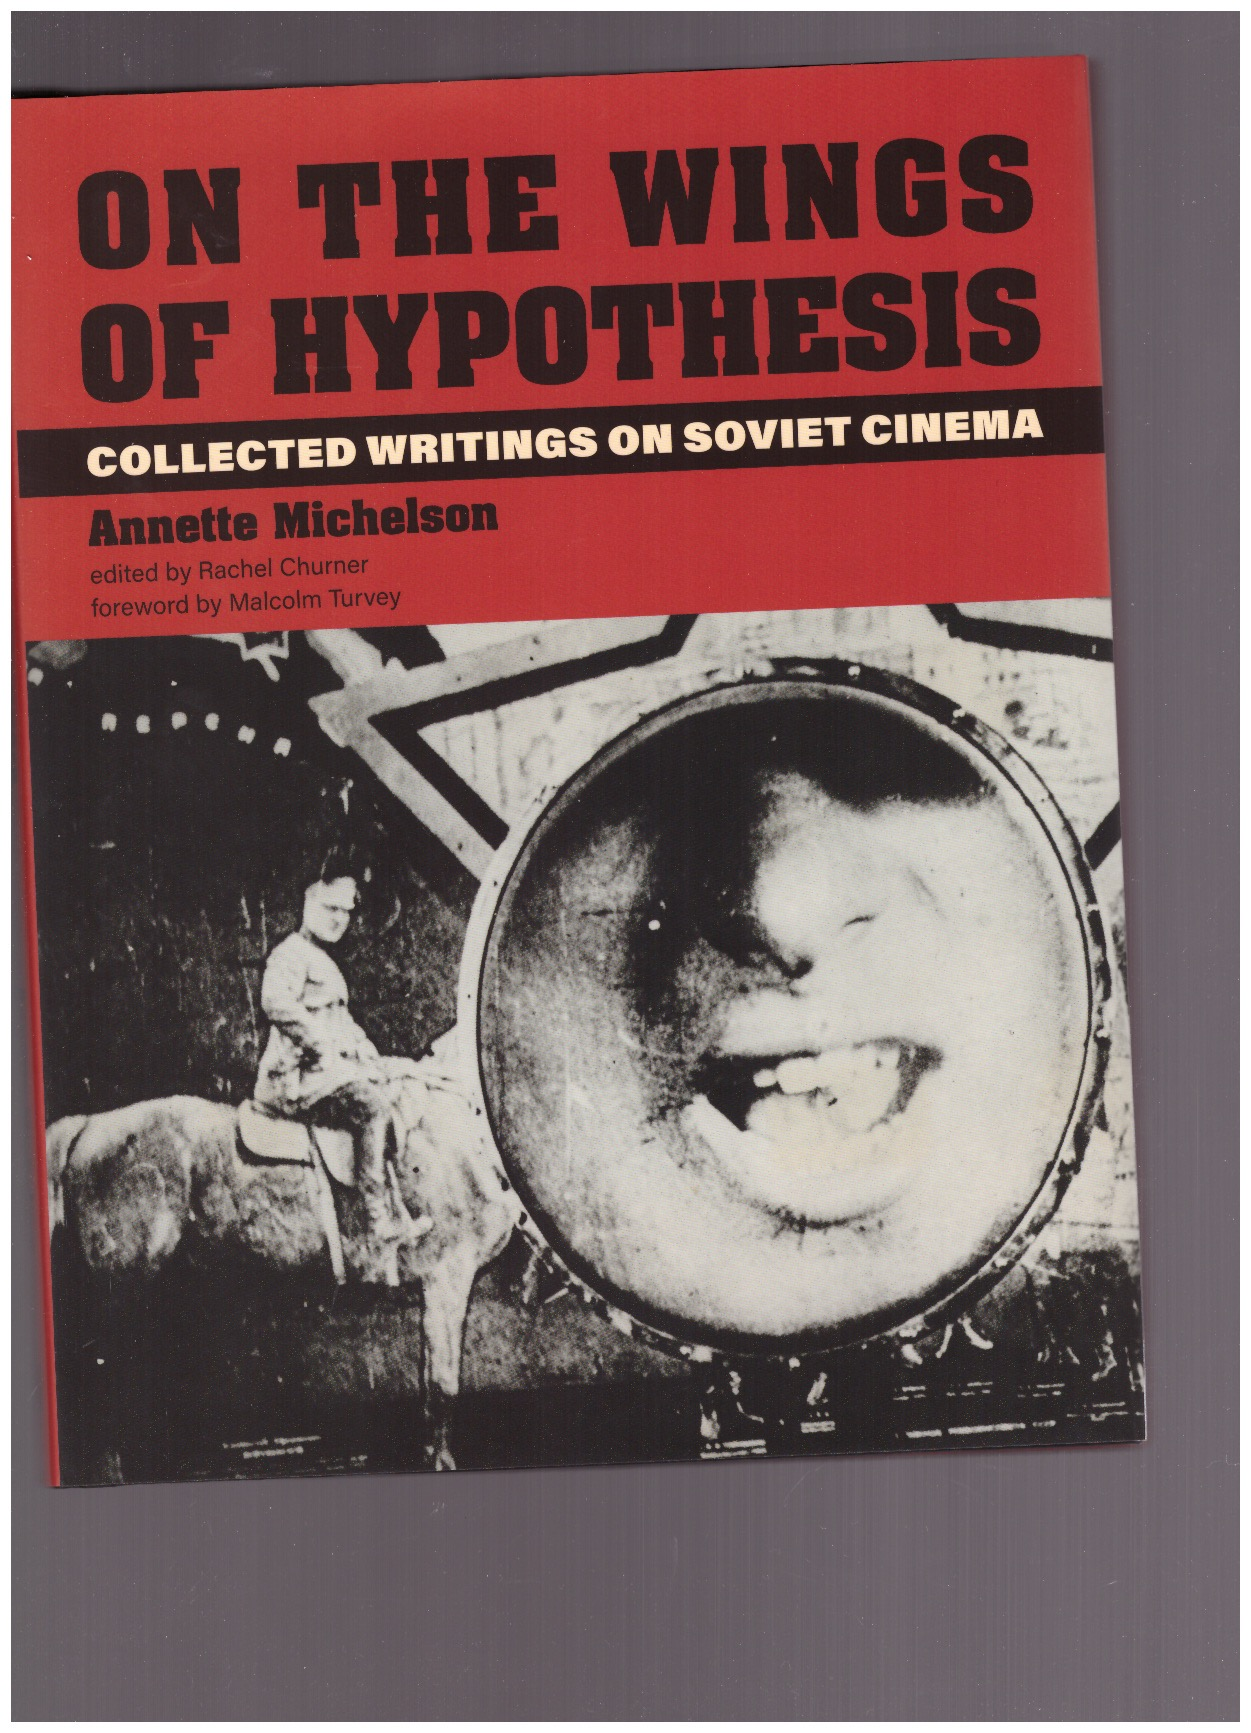 MICHELSON, Annette - On the wings of hypothesis : collected writings on soviet cinema